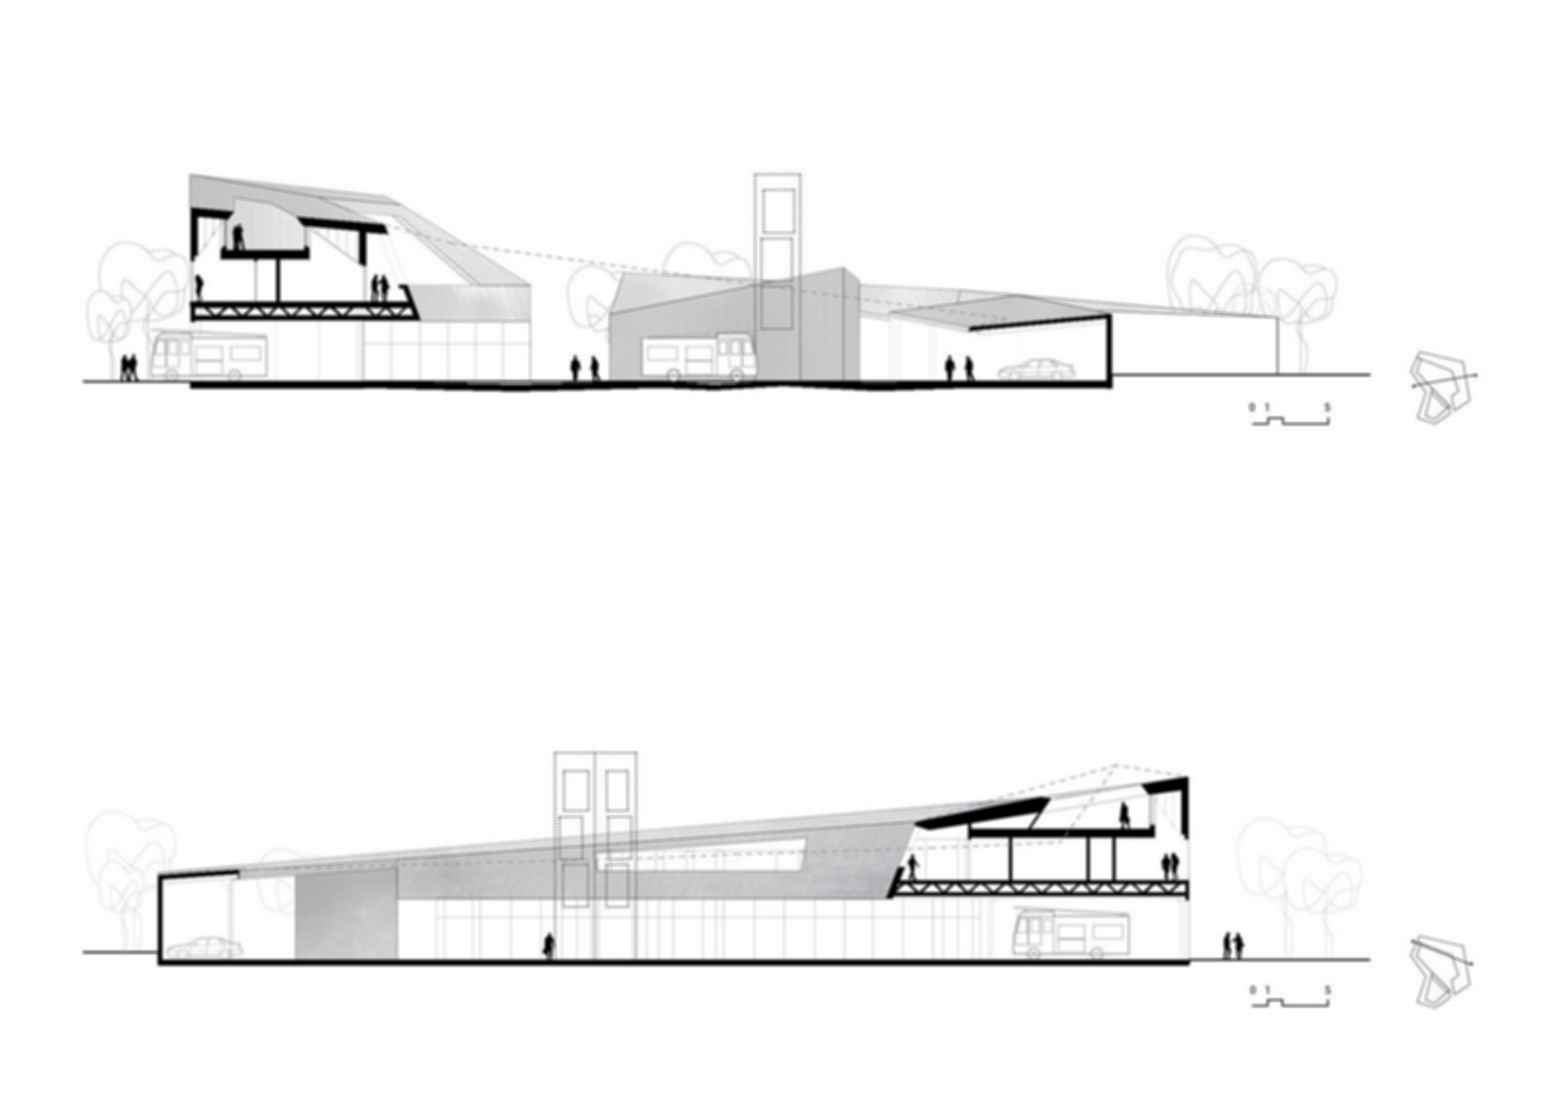 Waterford Fire Station - Concept Design